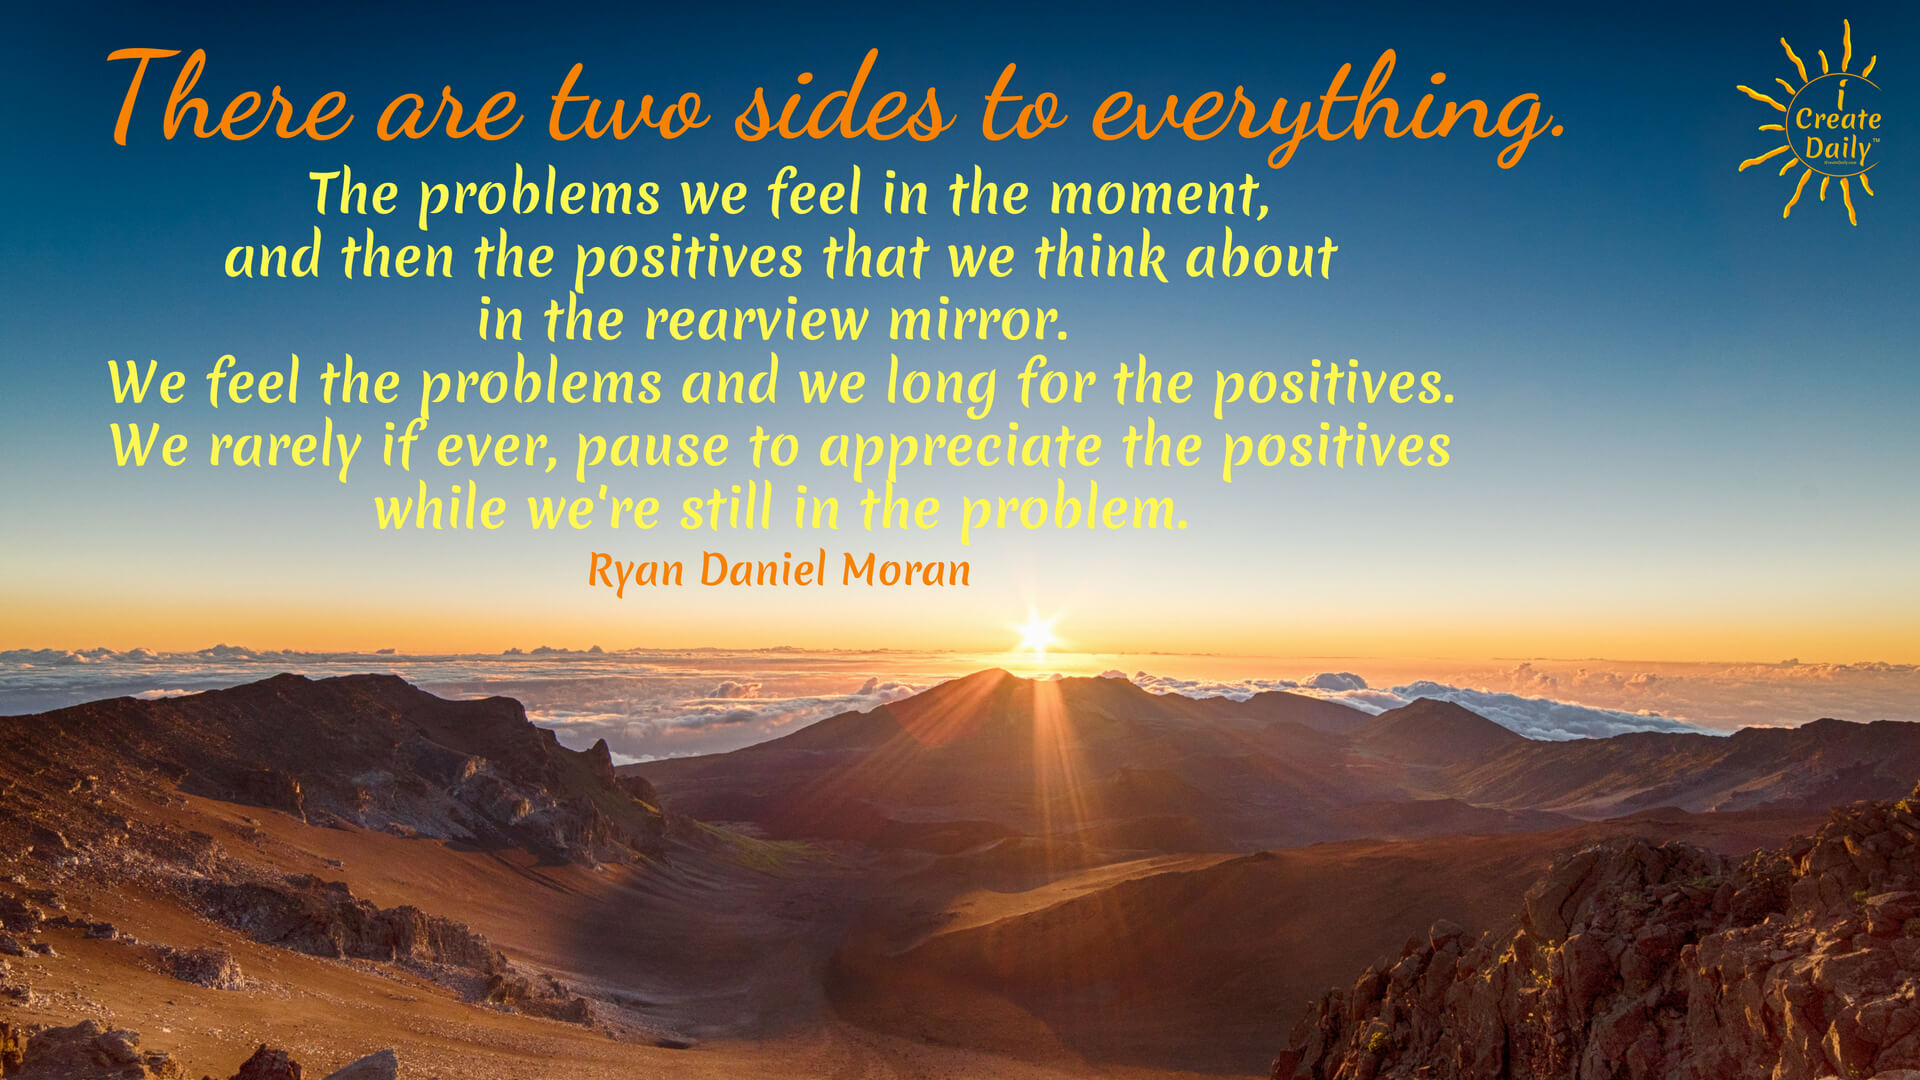 """There are two sides to everything. The problems we feel in the moment, and then the positives that we think about in the rearview mirror. We feel the problems and we long for the positives. We rarely if ever, pause to appreciate the positives while we're still in the problem."""" ~ Ryan Daniel Moran; Capitalism.com #Quotes #Gratitude #CultivateCreativity #CreativeIdeas #Gratitude #Joy #Creators #Struggle #RearviewMirror"""